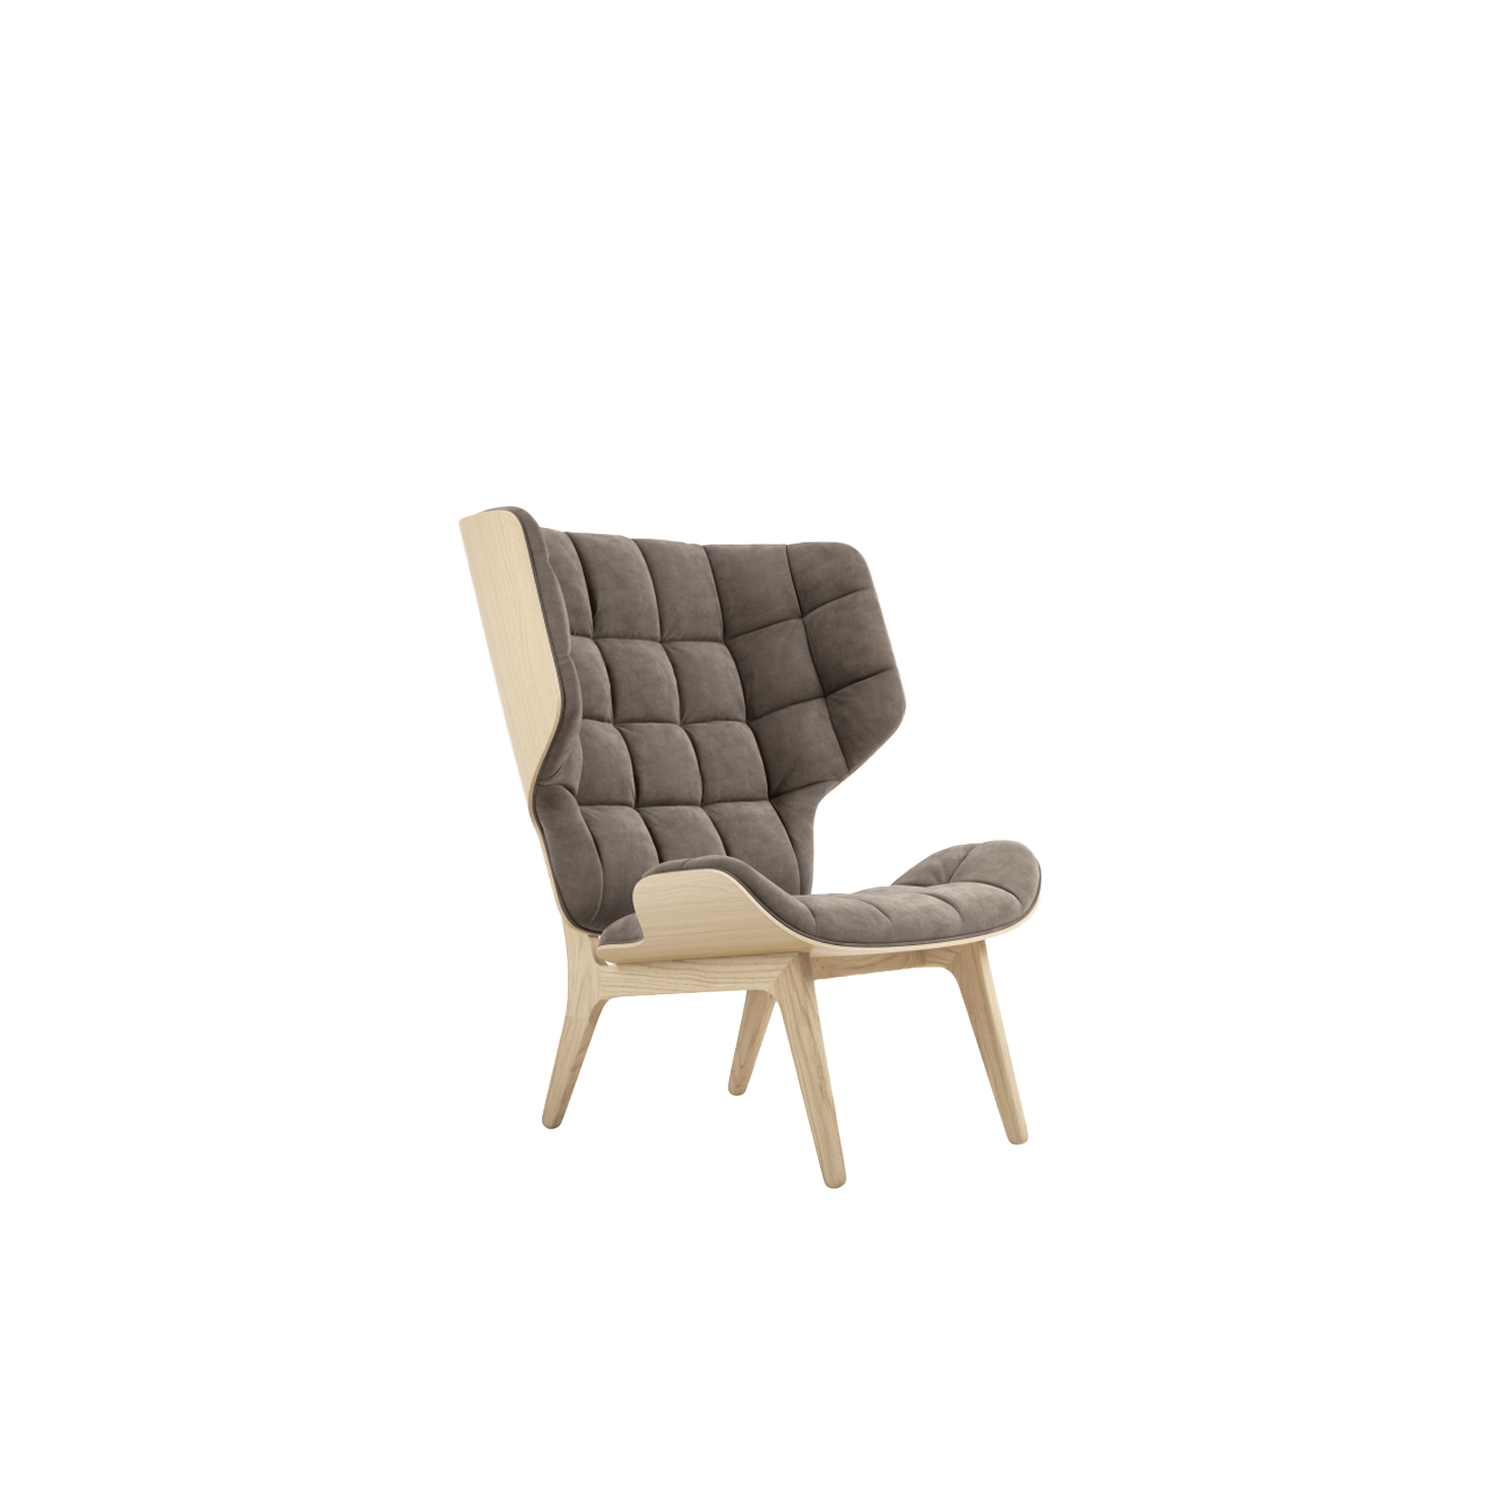 """Mammoth Lounge Chair - The Mammoth chair is designed by the Danish designer Rune Krøjgaard and Norwegian designer Knut Bendik Humlevik, the Mammoth Chair is a welcoming modern wing chair. The wings extend outwards from the back of the seat, creating a pleasant homelike feeling. Rune's passion for shapes and specific manufacturing techniques coupled with Knut's pursuit to create stylish yet functional furniture manifest themselves in the Mammoth Chair. The seat and back are formed from the same compression mold, giving the chair its signature clean minimalistic look. The high back, hugging wings and fluffy upholstery provide superior comfort and sense of privacy, whether relaxing at home or lounging with others.  The Mammoth Chair is hand-crafted, using solid oak wood for its frame and oak veneer for the seat and back. The frame comes in multiple colorways; natural, smoked, dark stained and black, upholstered in enormous variations of fabrics and leathers.  """"For me functionality is a key factor, and can never be ignored, so if I can achieve pure style and functionality in a product, I'm glad."""" - Knut Bendik Humlevik     SHOW COLLECTION  